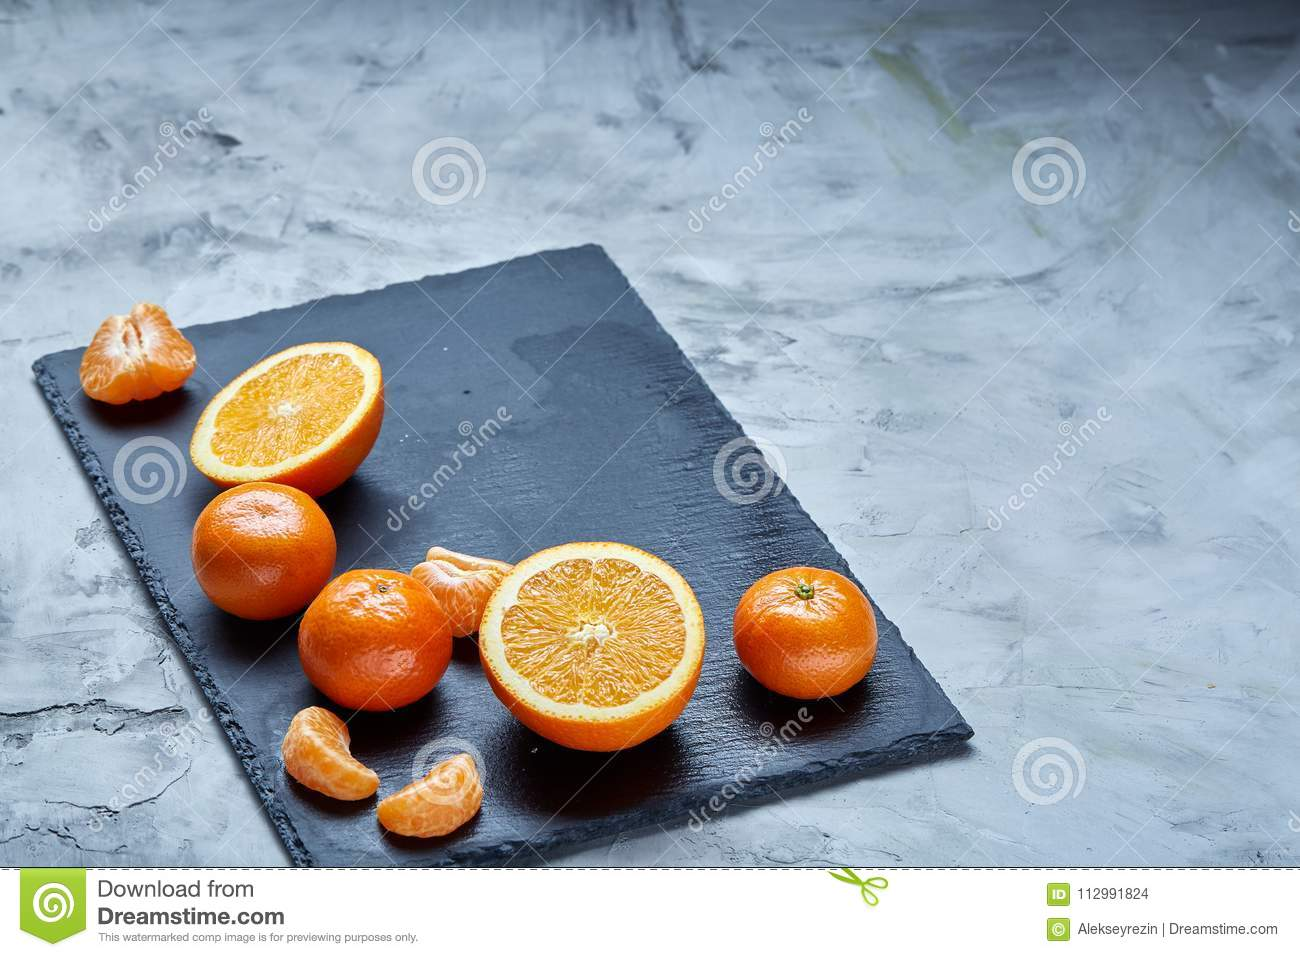 Pile of whole and half cut fresh tangerine and orange on cutting board, close-up